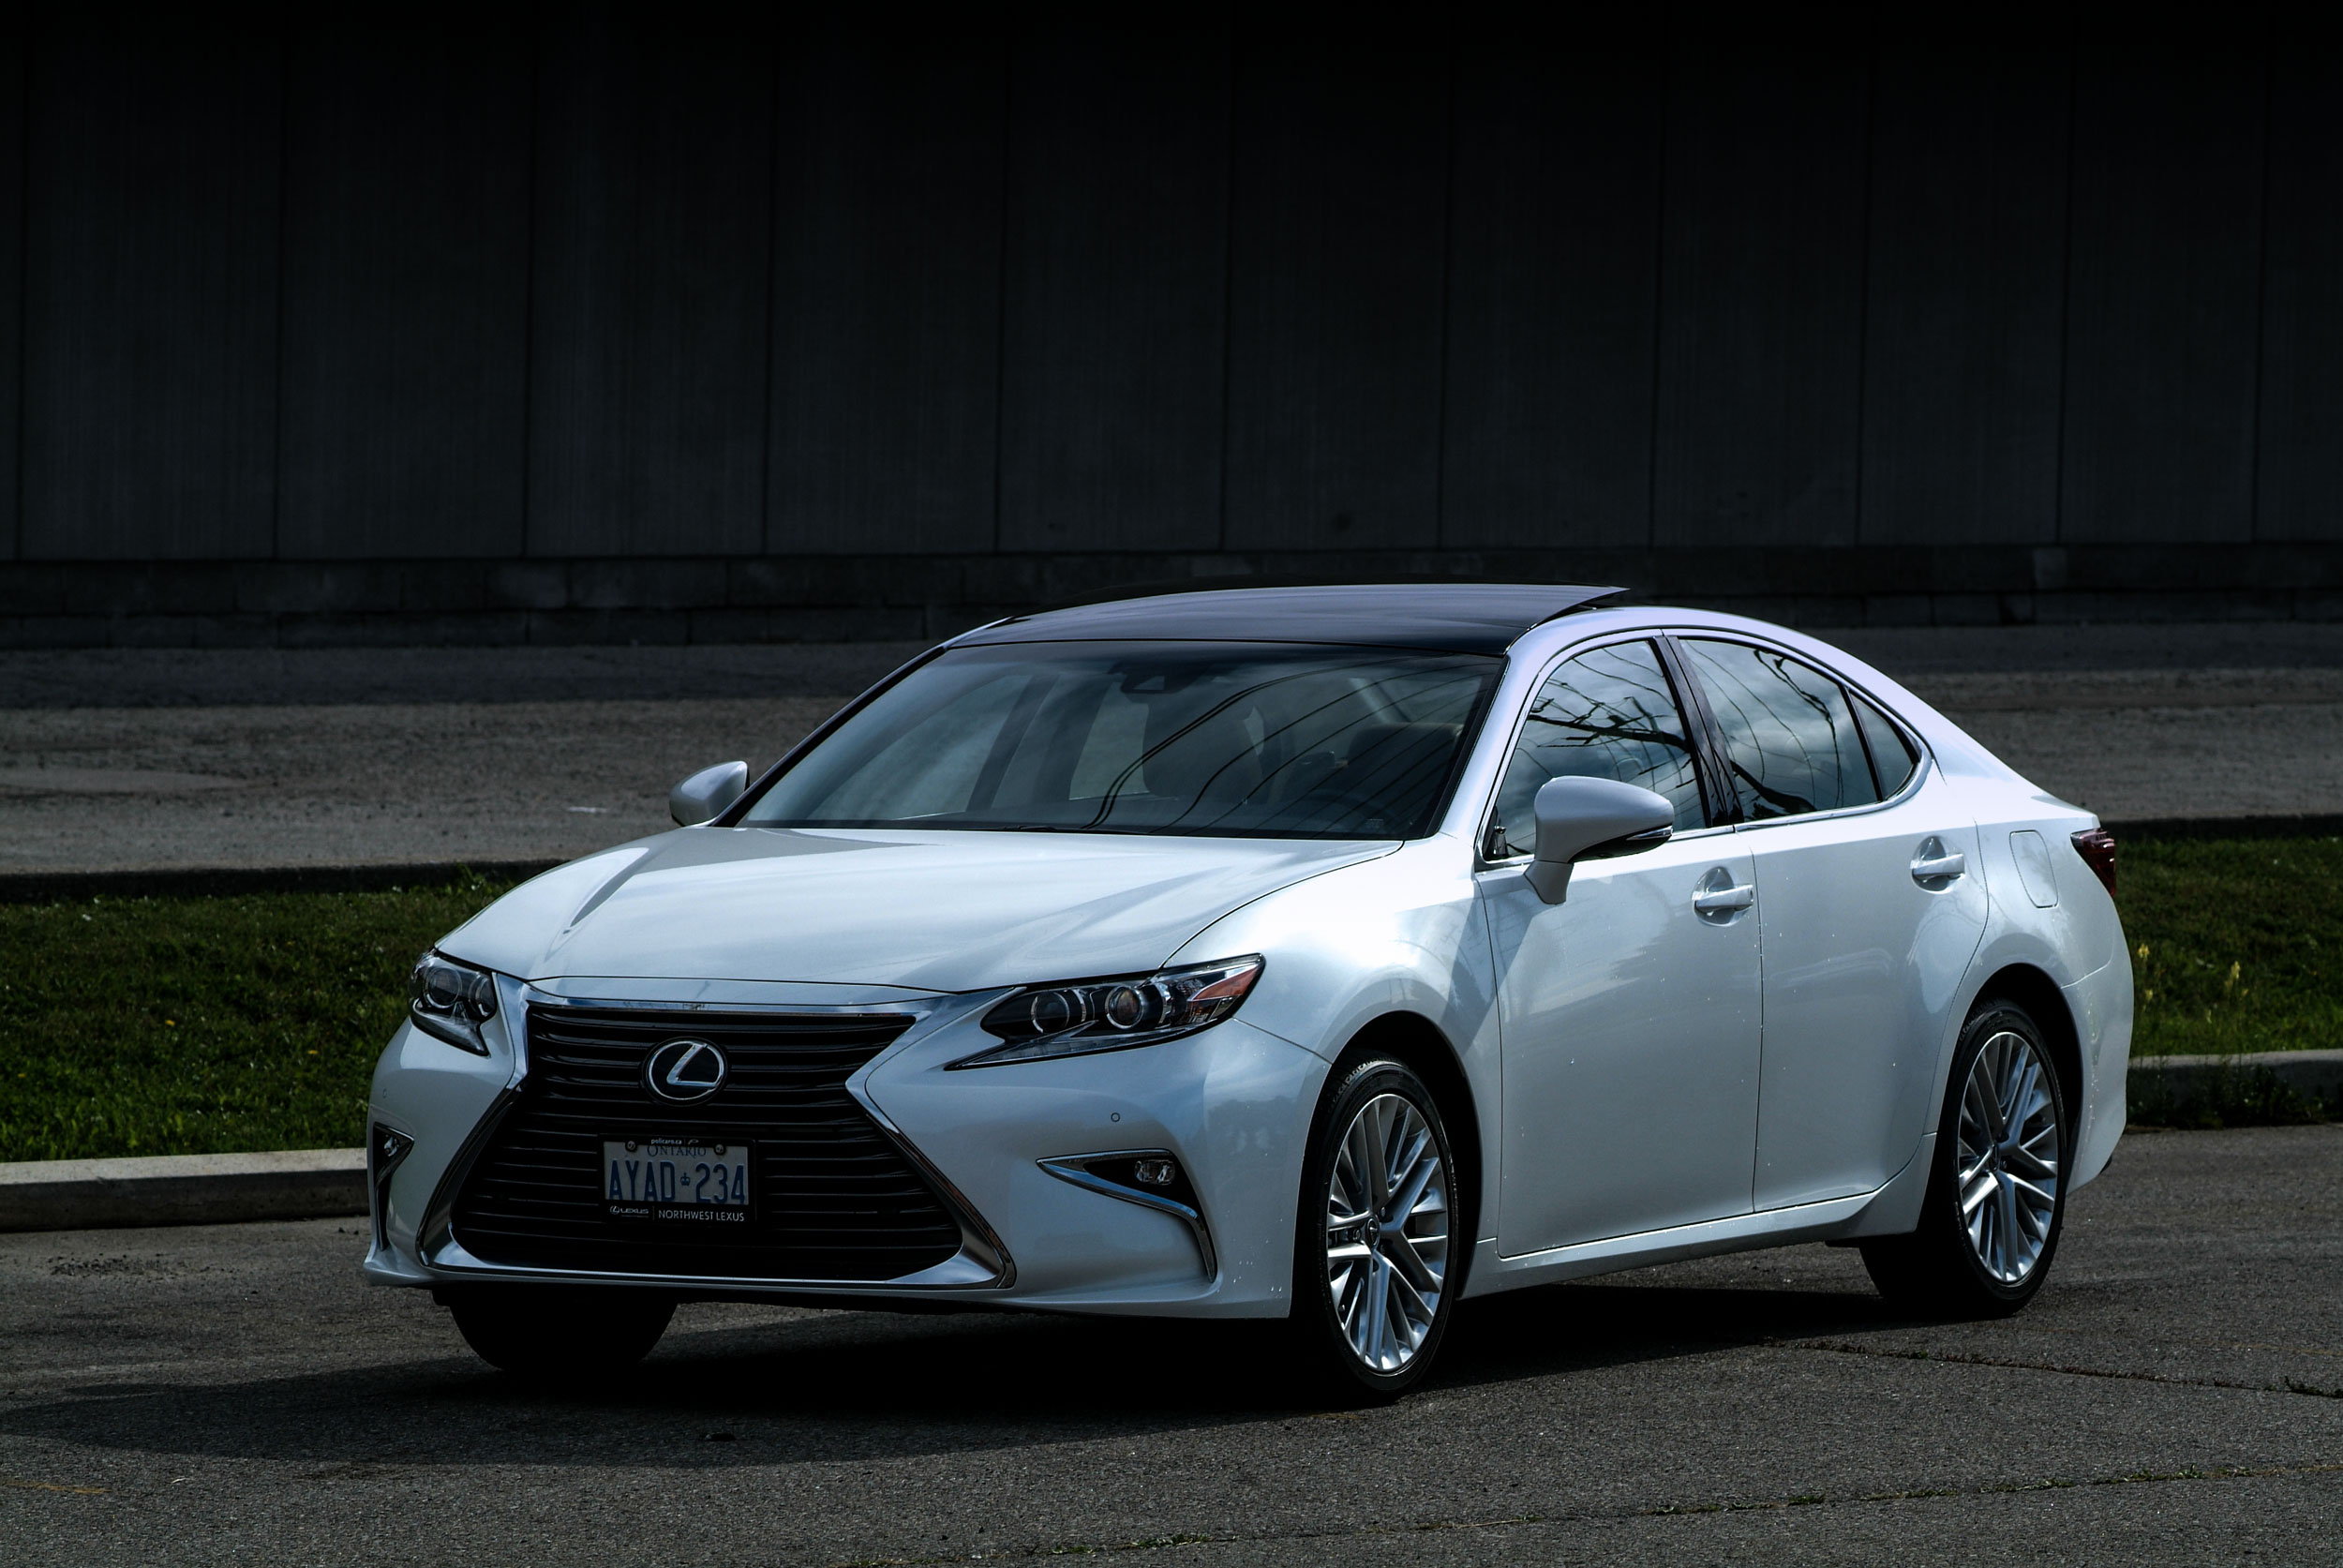 2016 Lexus ES Review- The 2016 Lexus ES head on